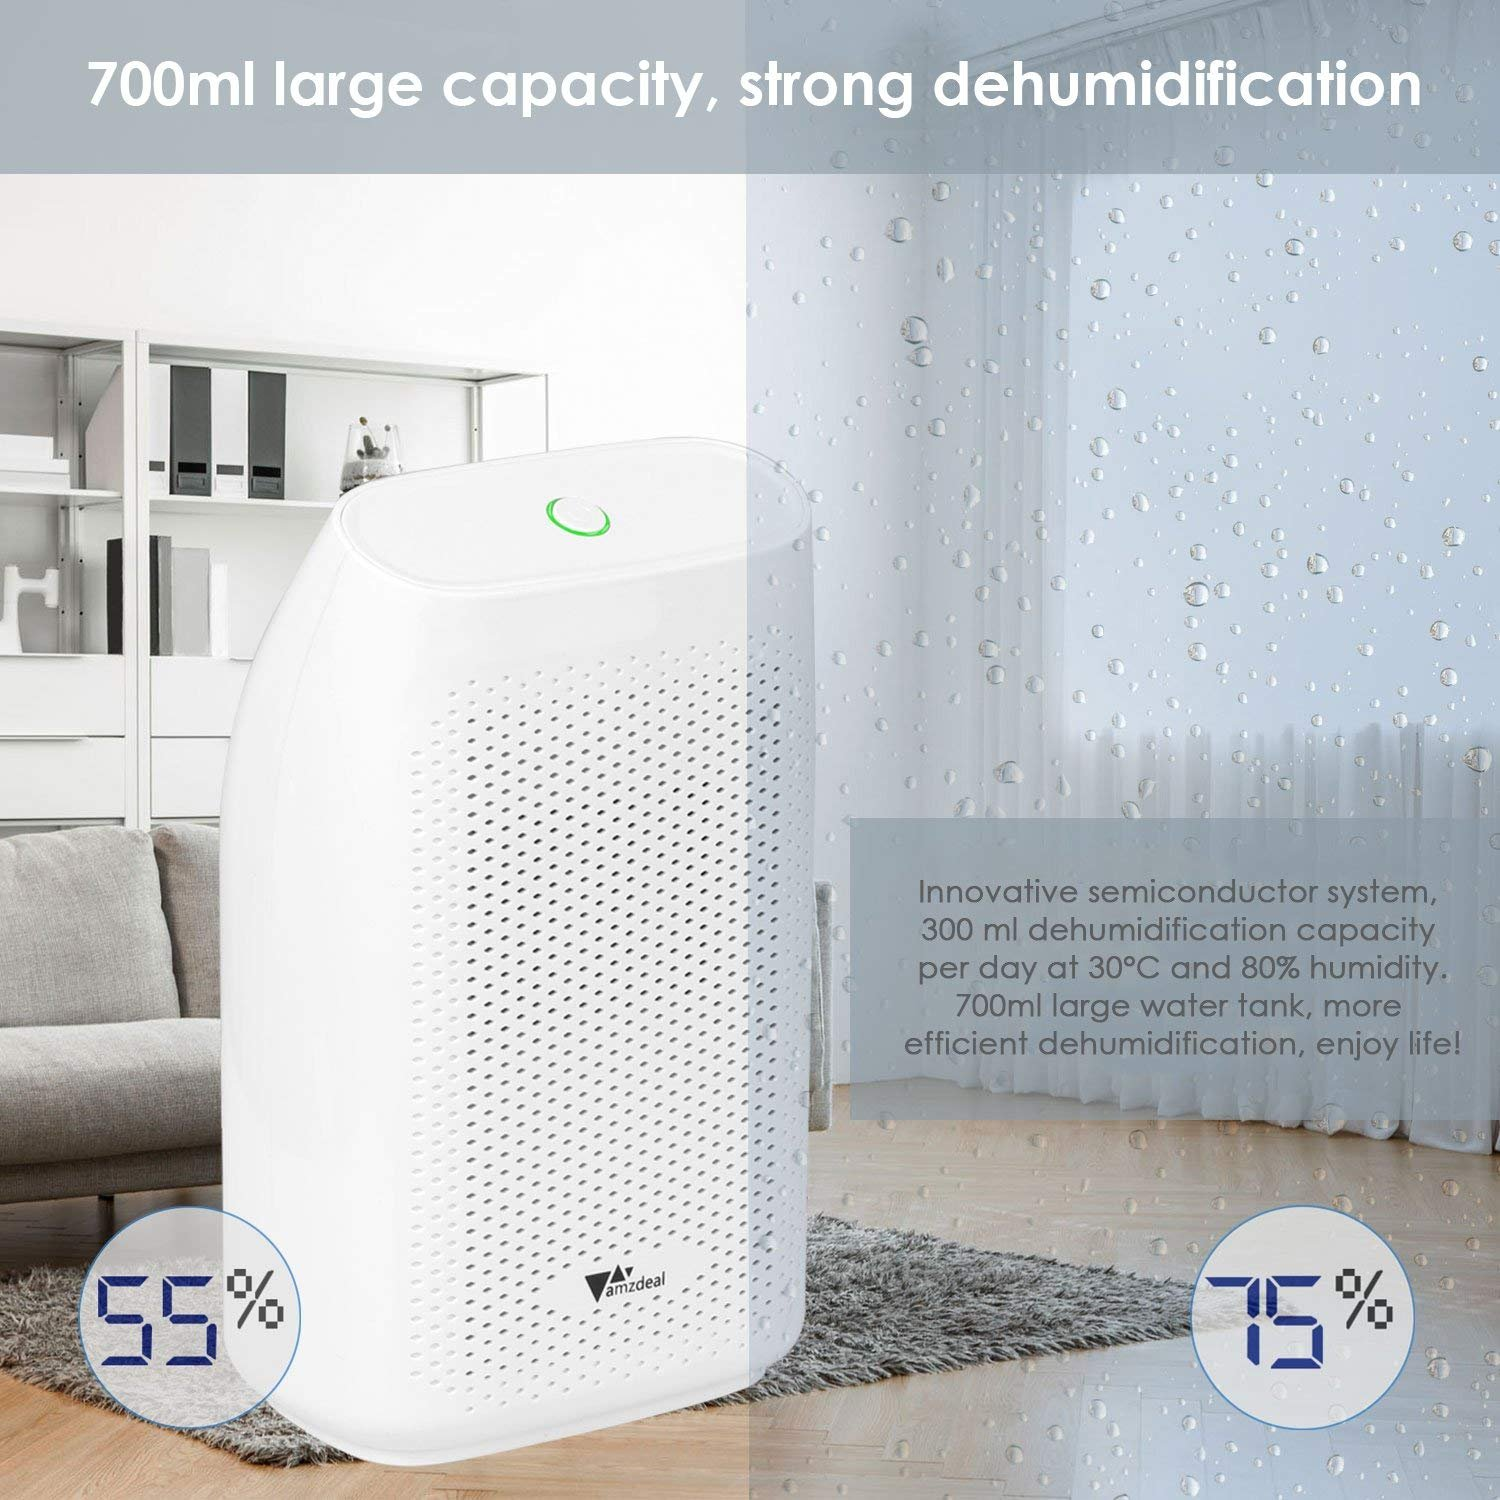 amzdeal Dehumidifier for Home Small Dehumidifier Mini Electrical Quiet 700ml (24fl.oz) Capacity Suitable for Bedroom Basement Bathroom(1200 Cubic Feet or 215 sq ft) Auto Off to Remove Damp, Moisture by amzdeal (Image #4)